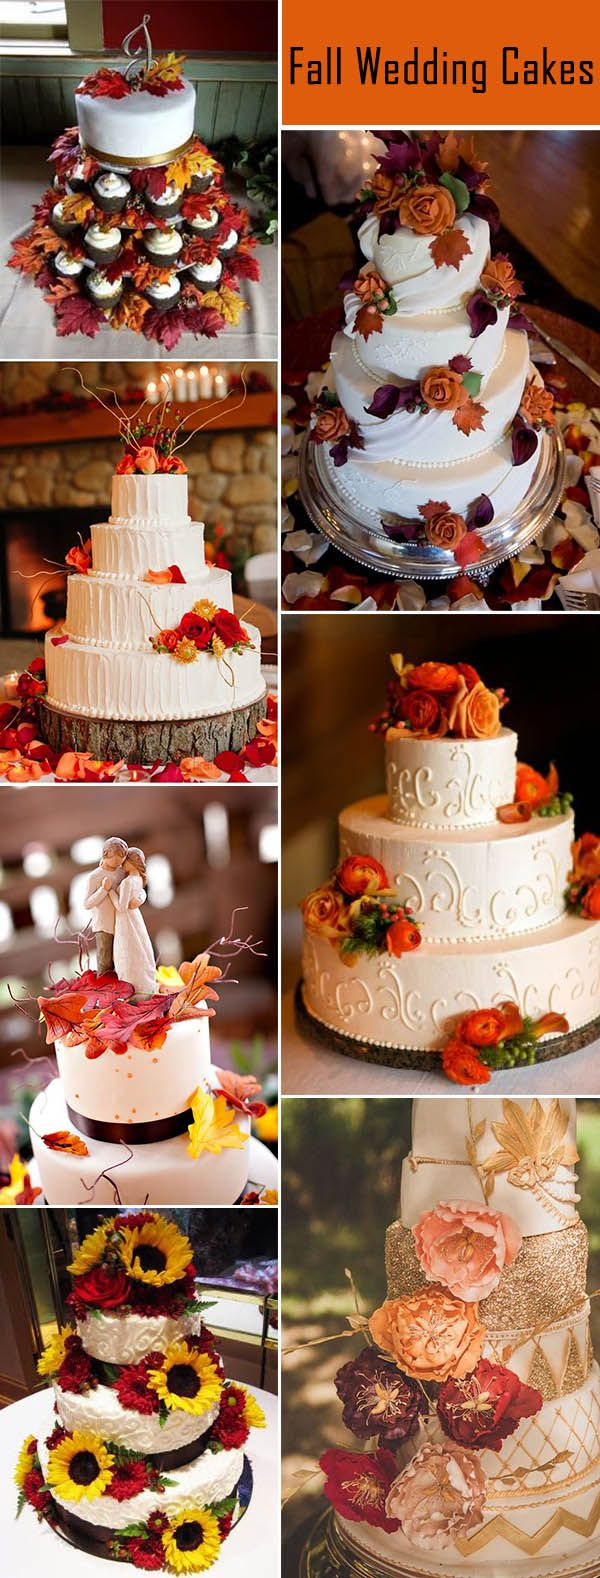 Fall In Love With These 50+ Great Fall Wedding Ideas | Wedding Ideas ...